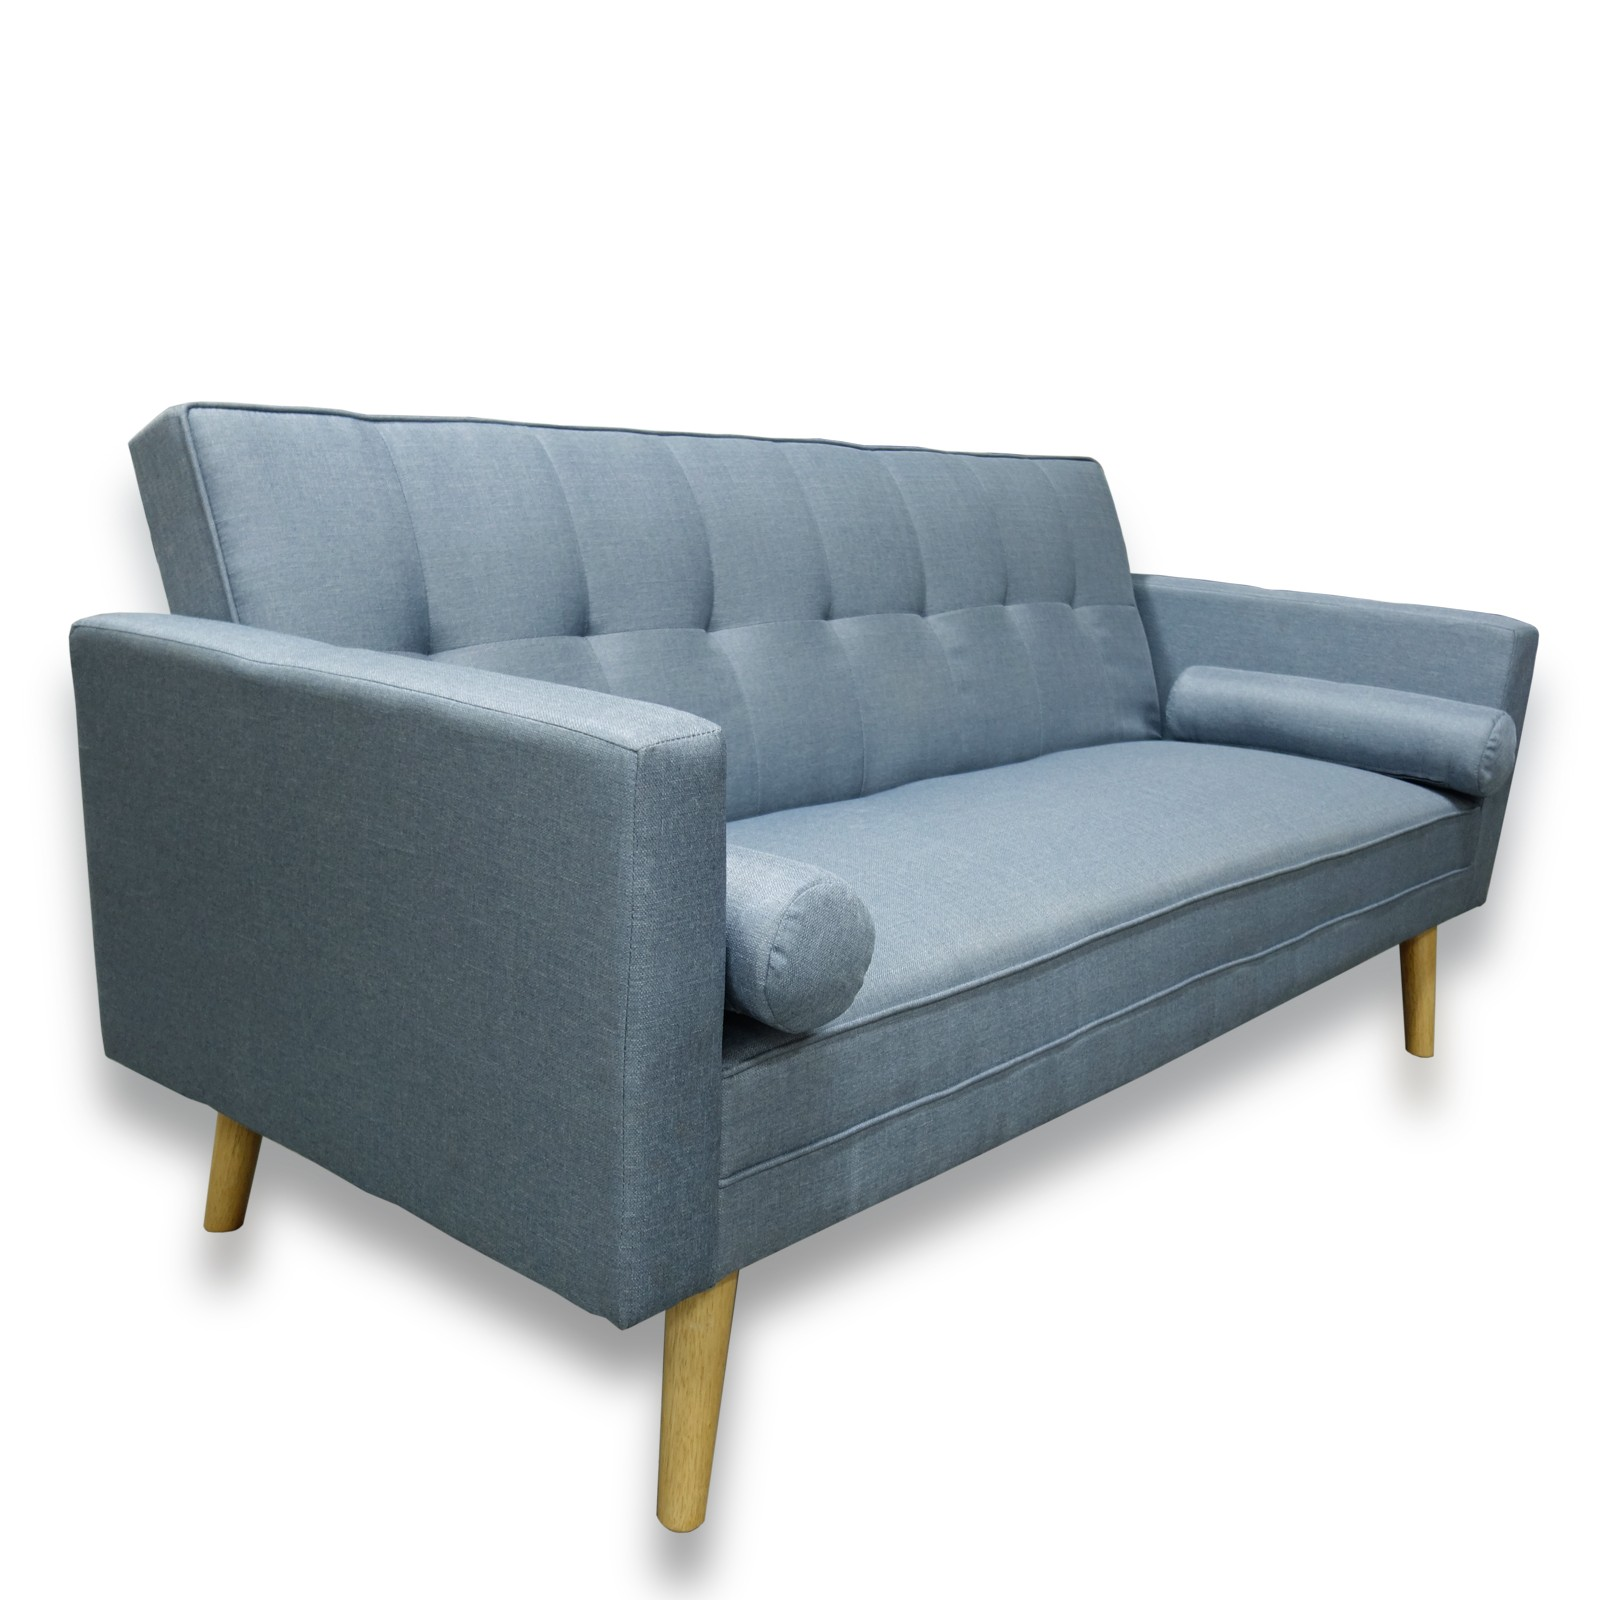 reviews on click clack sofa beds how to fix sagging cushions amy blue